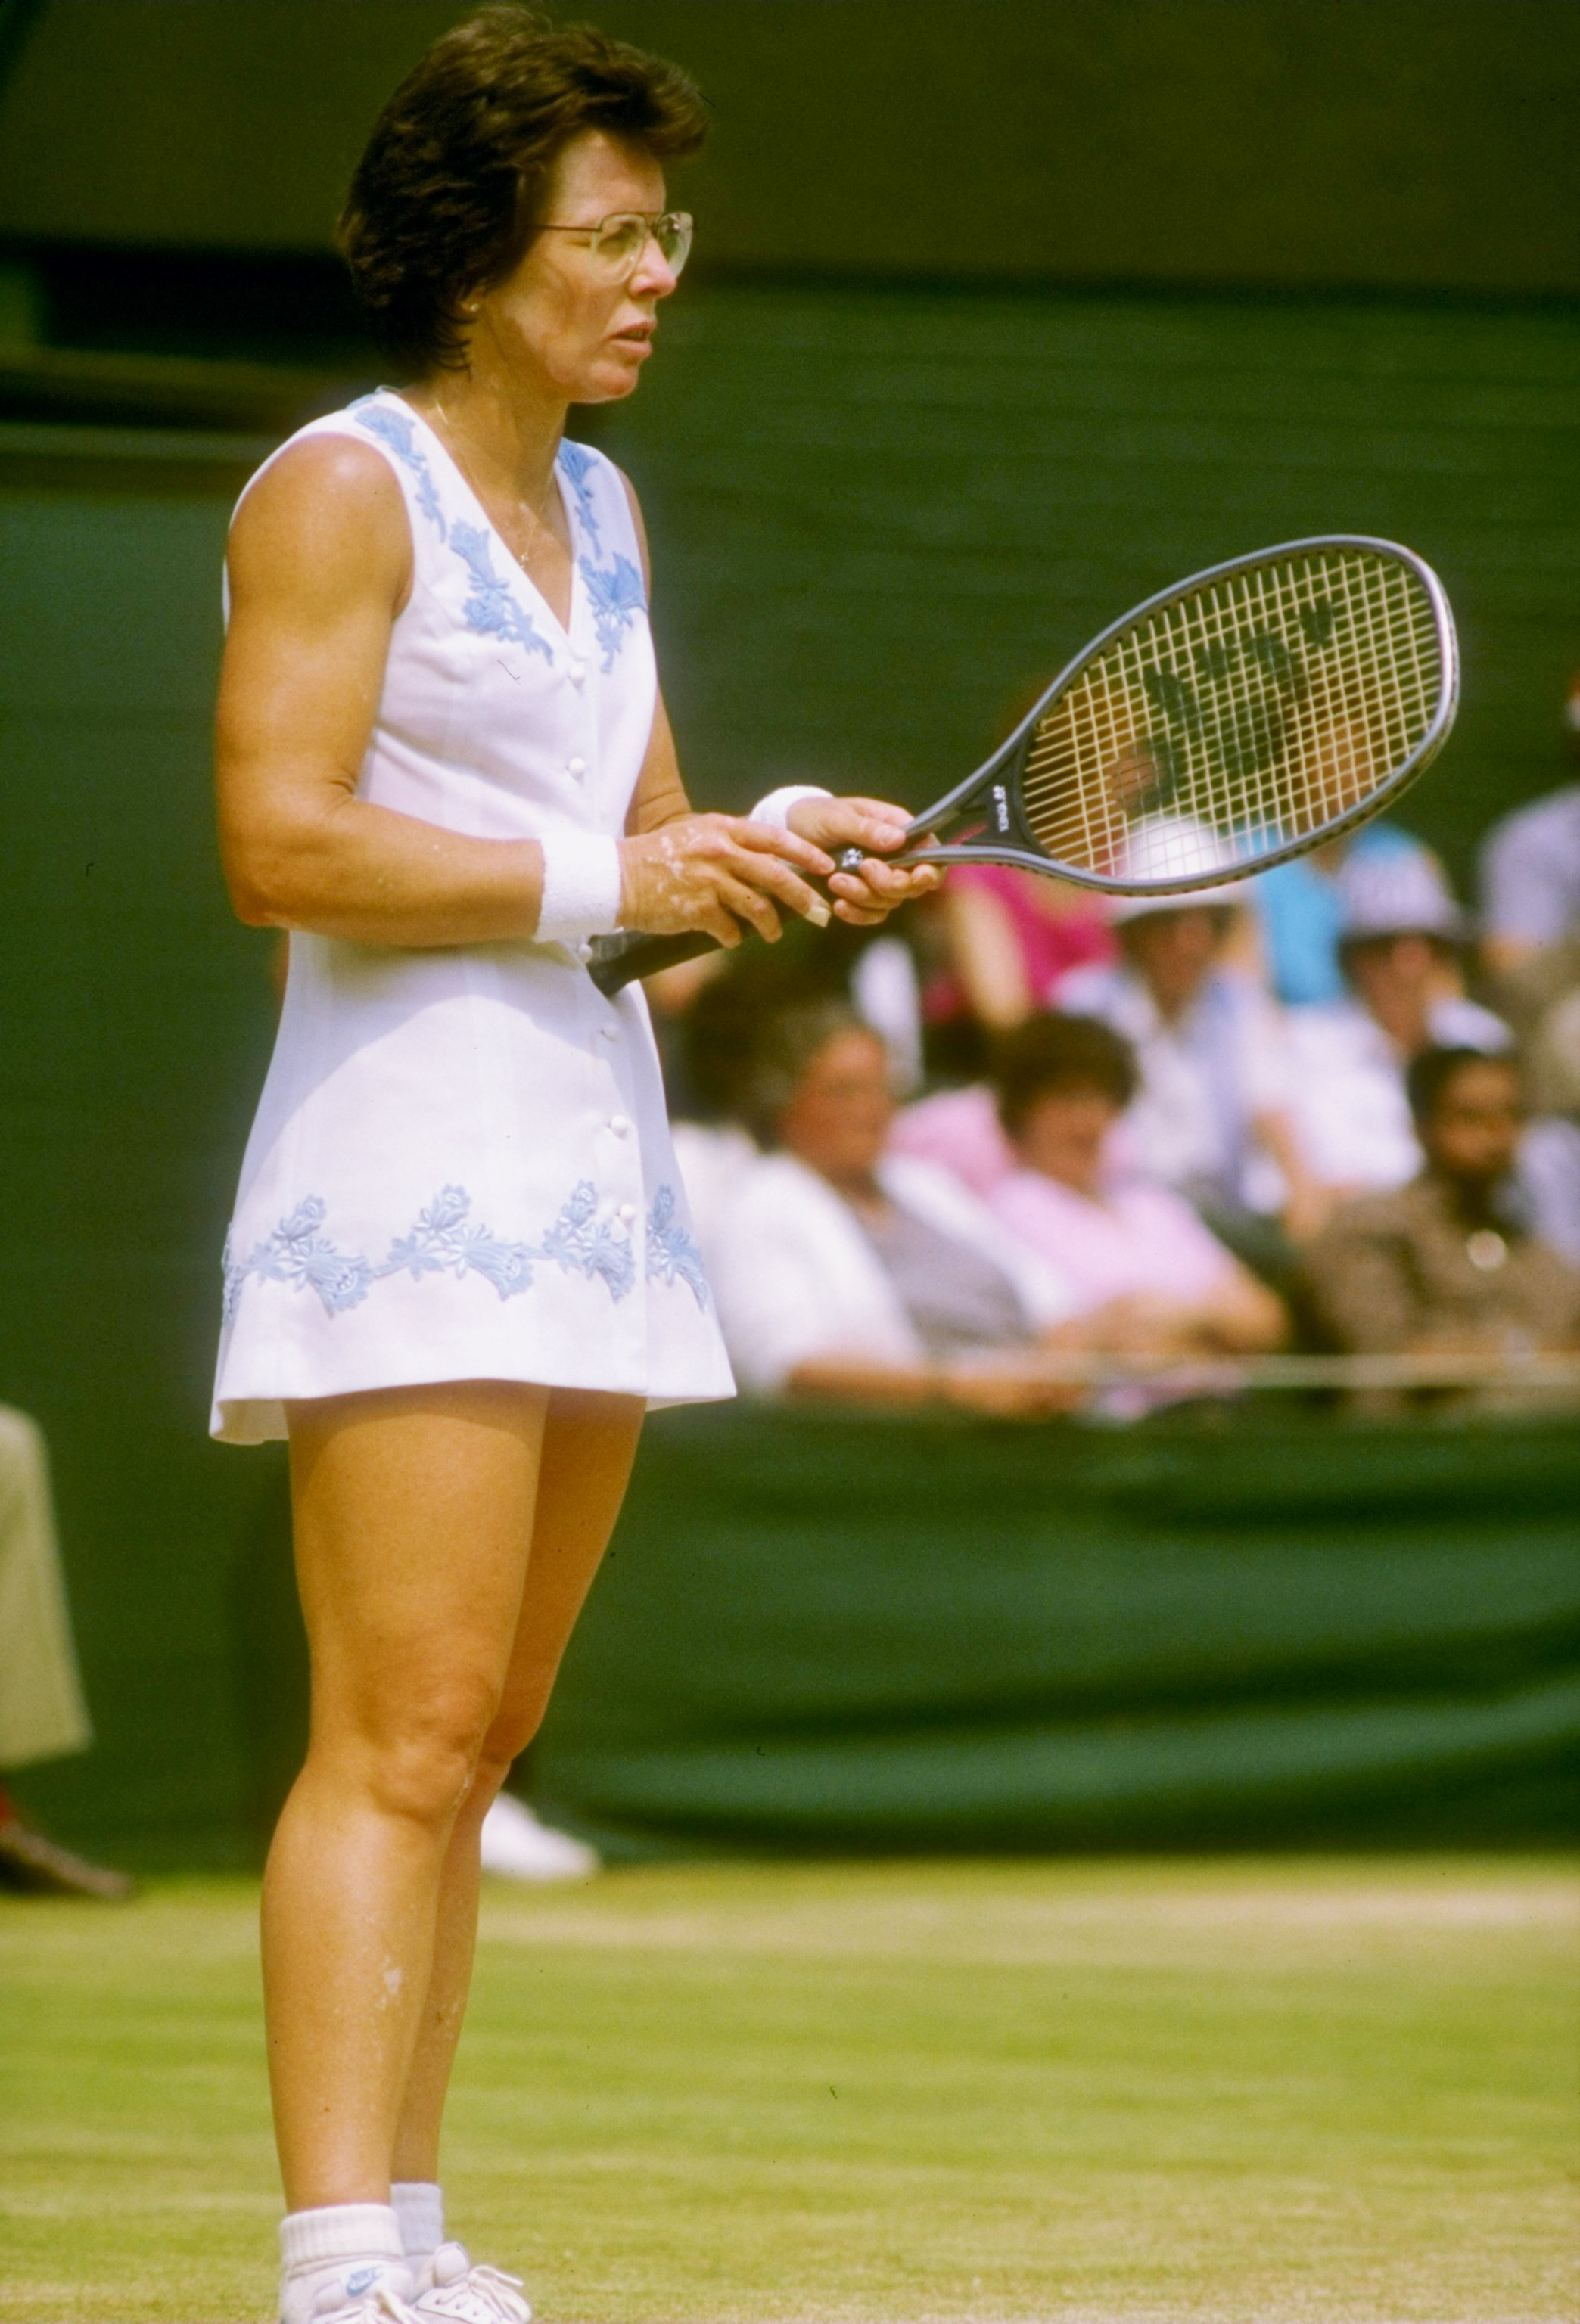 billie jean king - photo #10